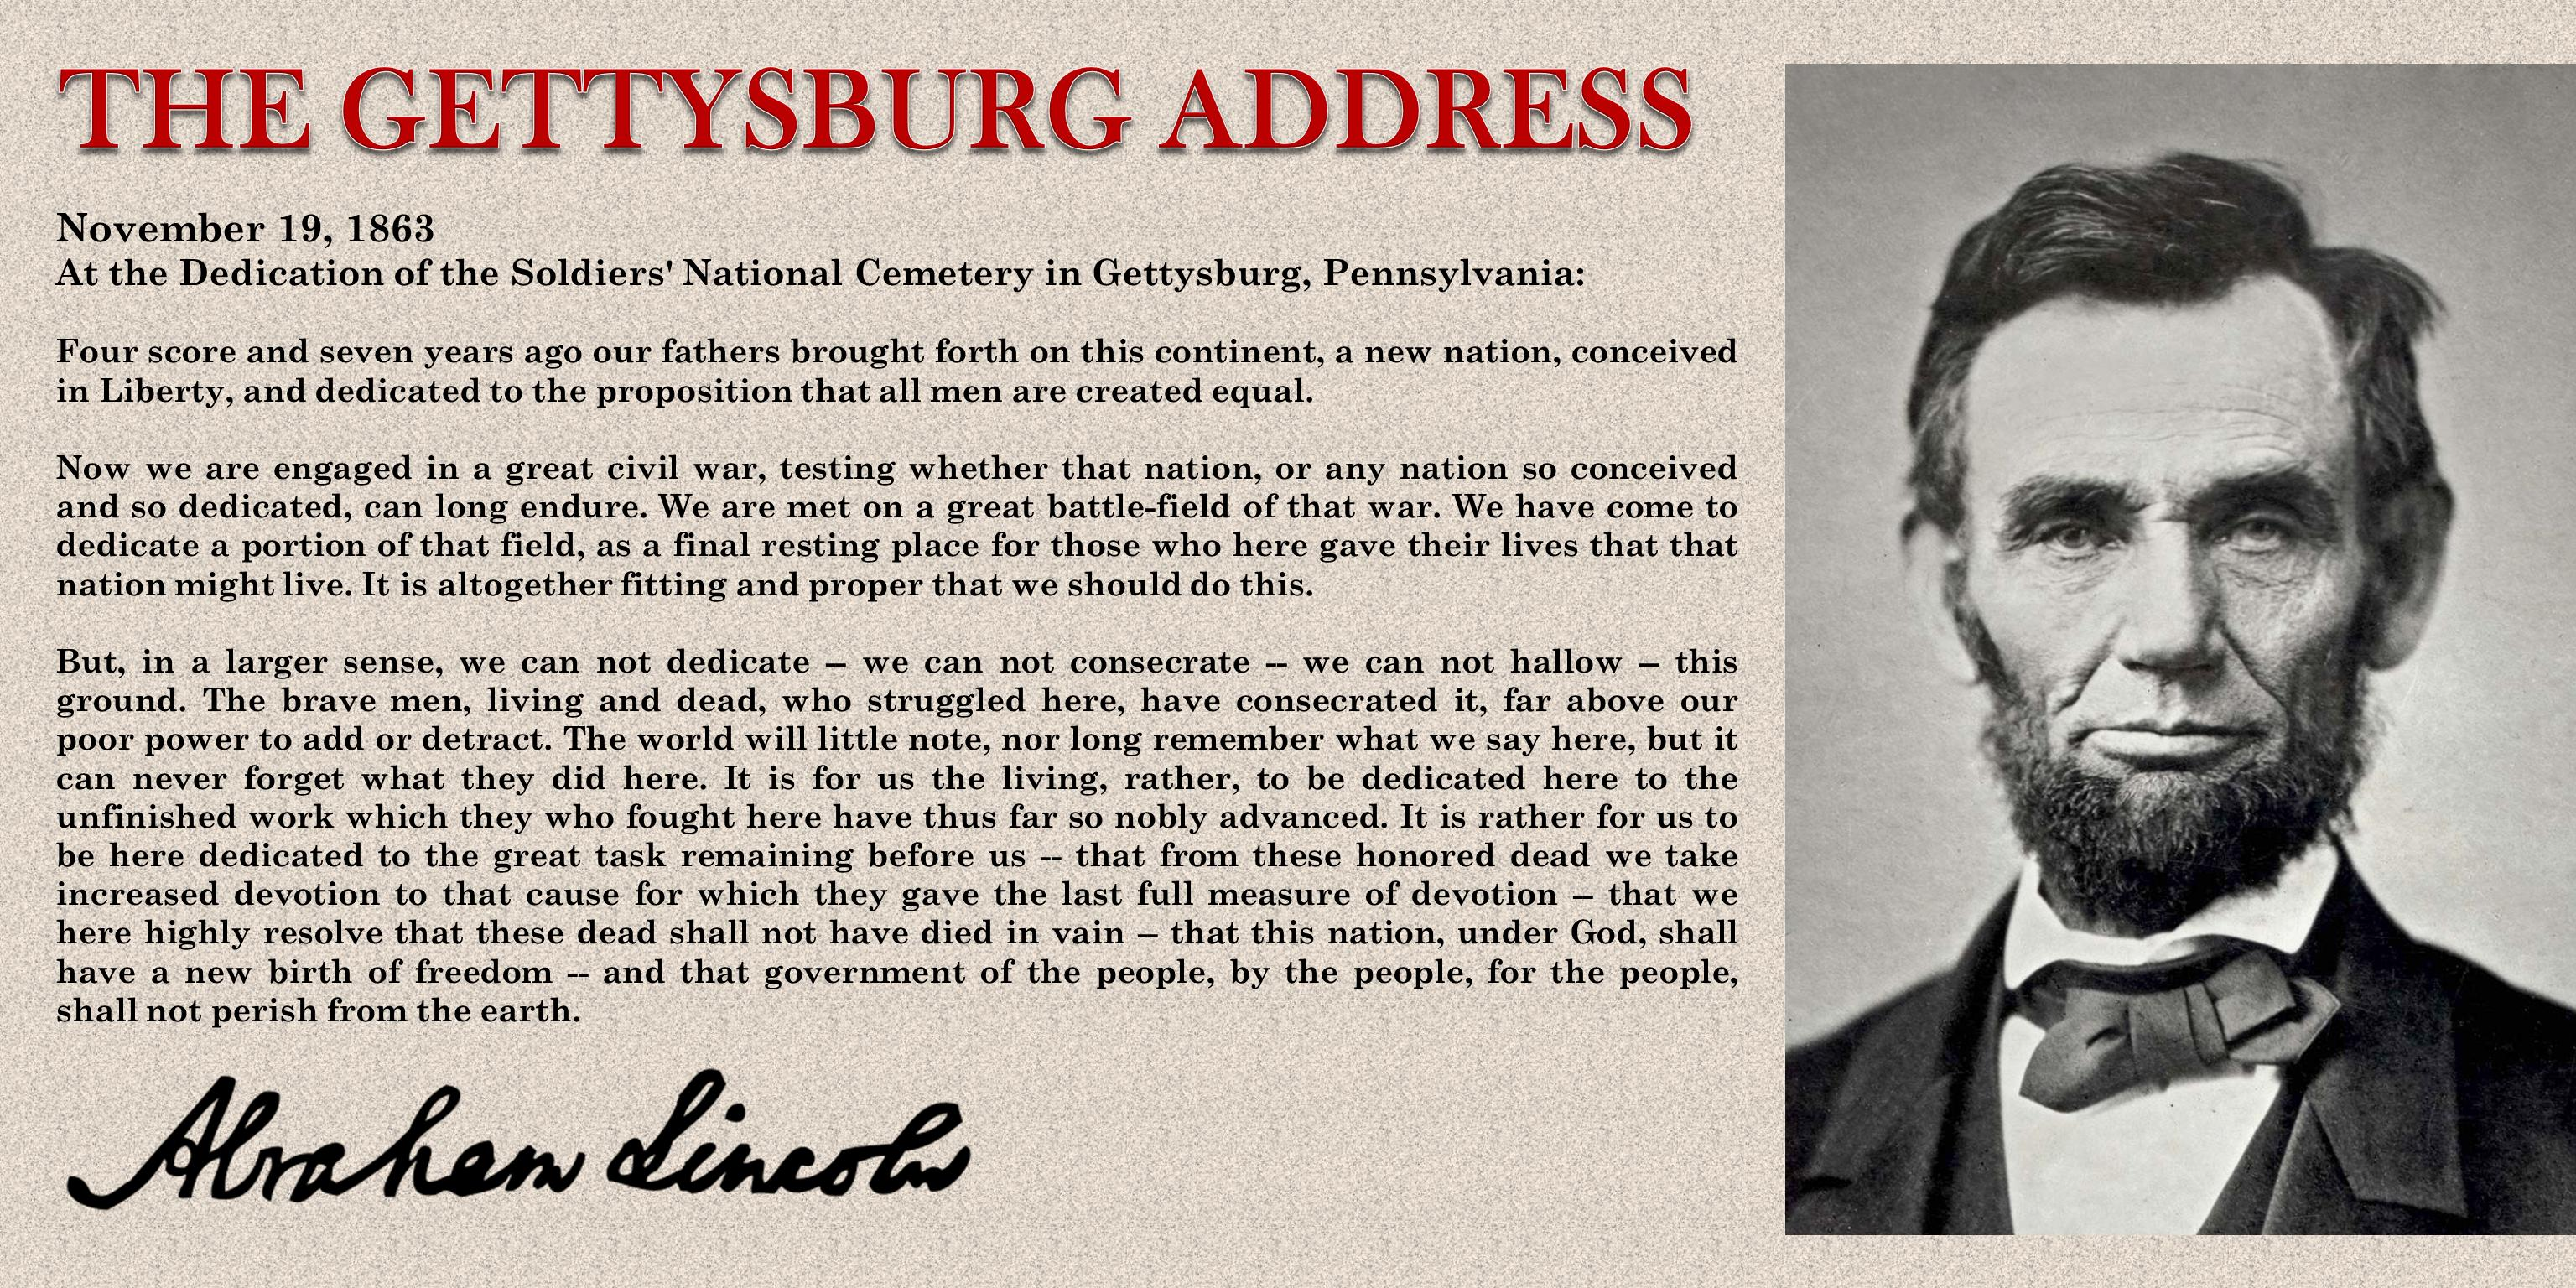 The Gettysburg Address by Abraham Lincoln, November 19, 1863.